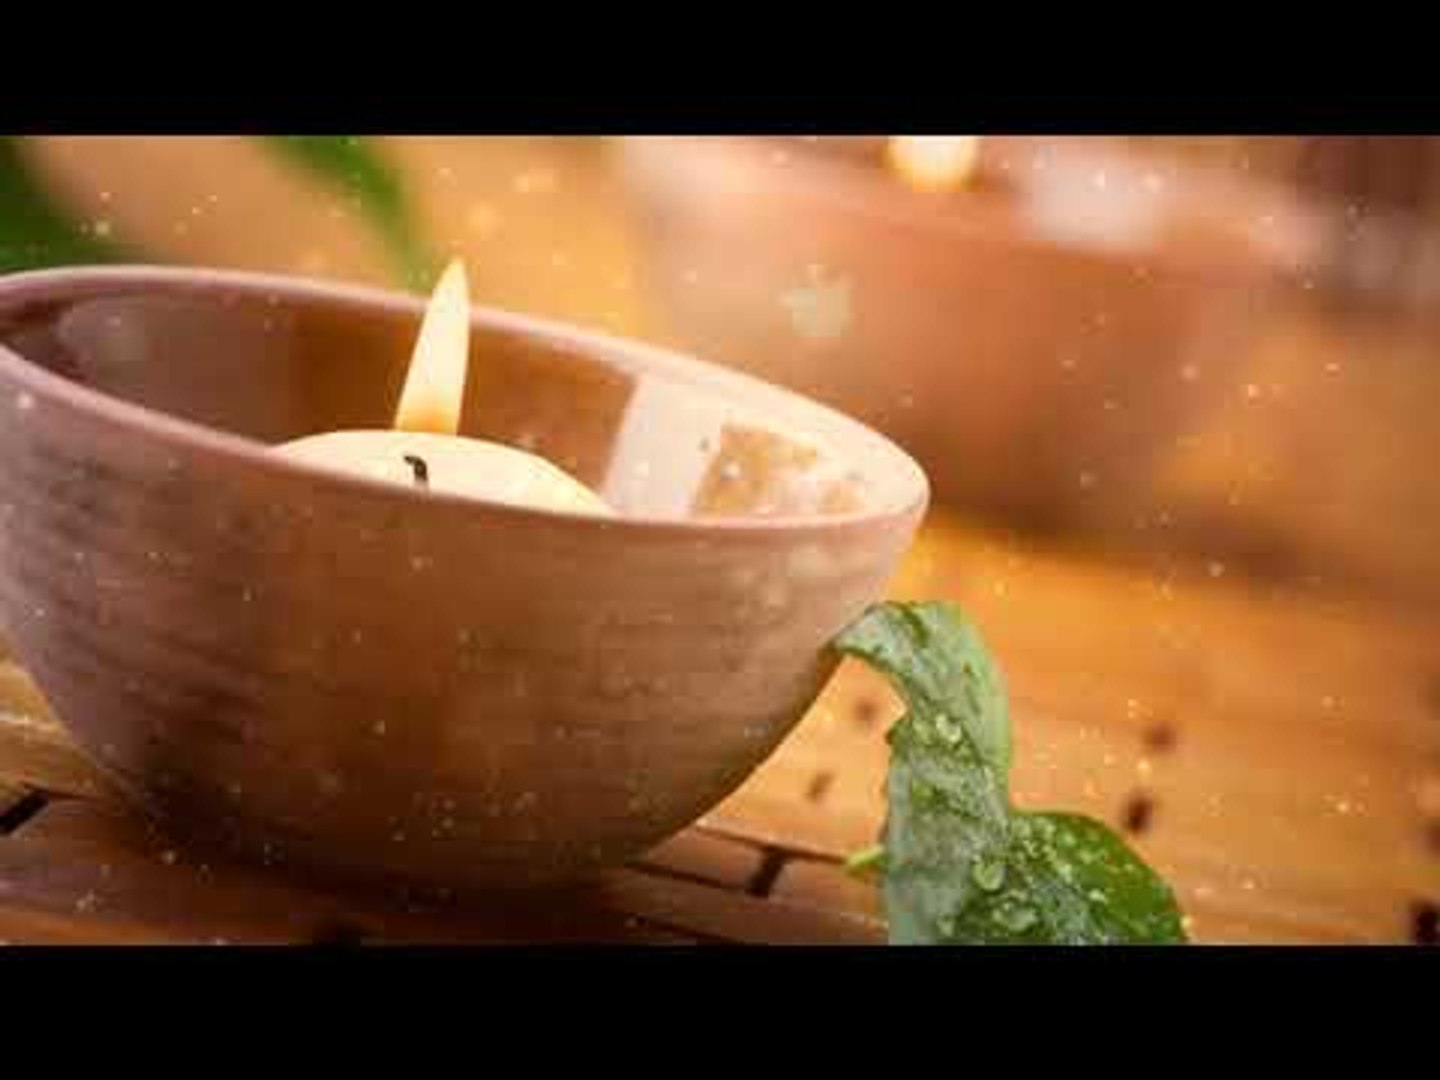 Oboe Music - Stress Relief, Inner Peace Music, Soothing Music, Meditation Relax Music